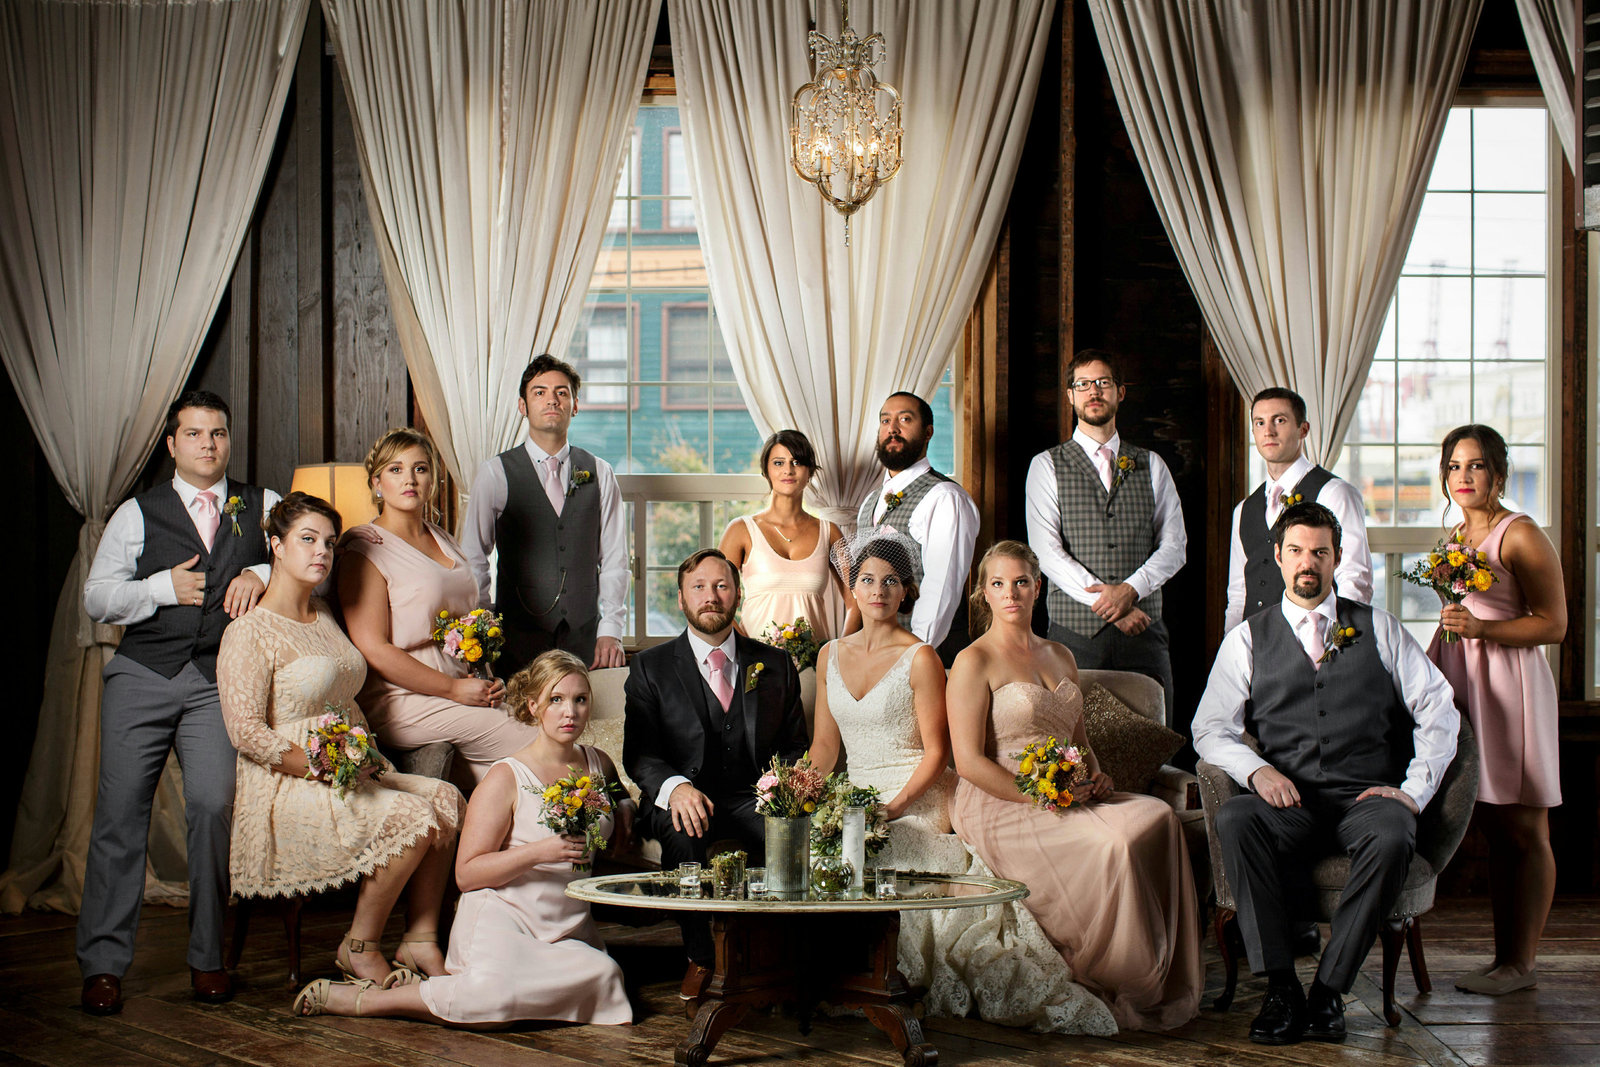 vouge bridal party vanity fair wedding portrait